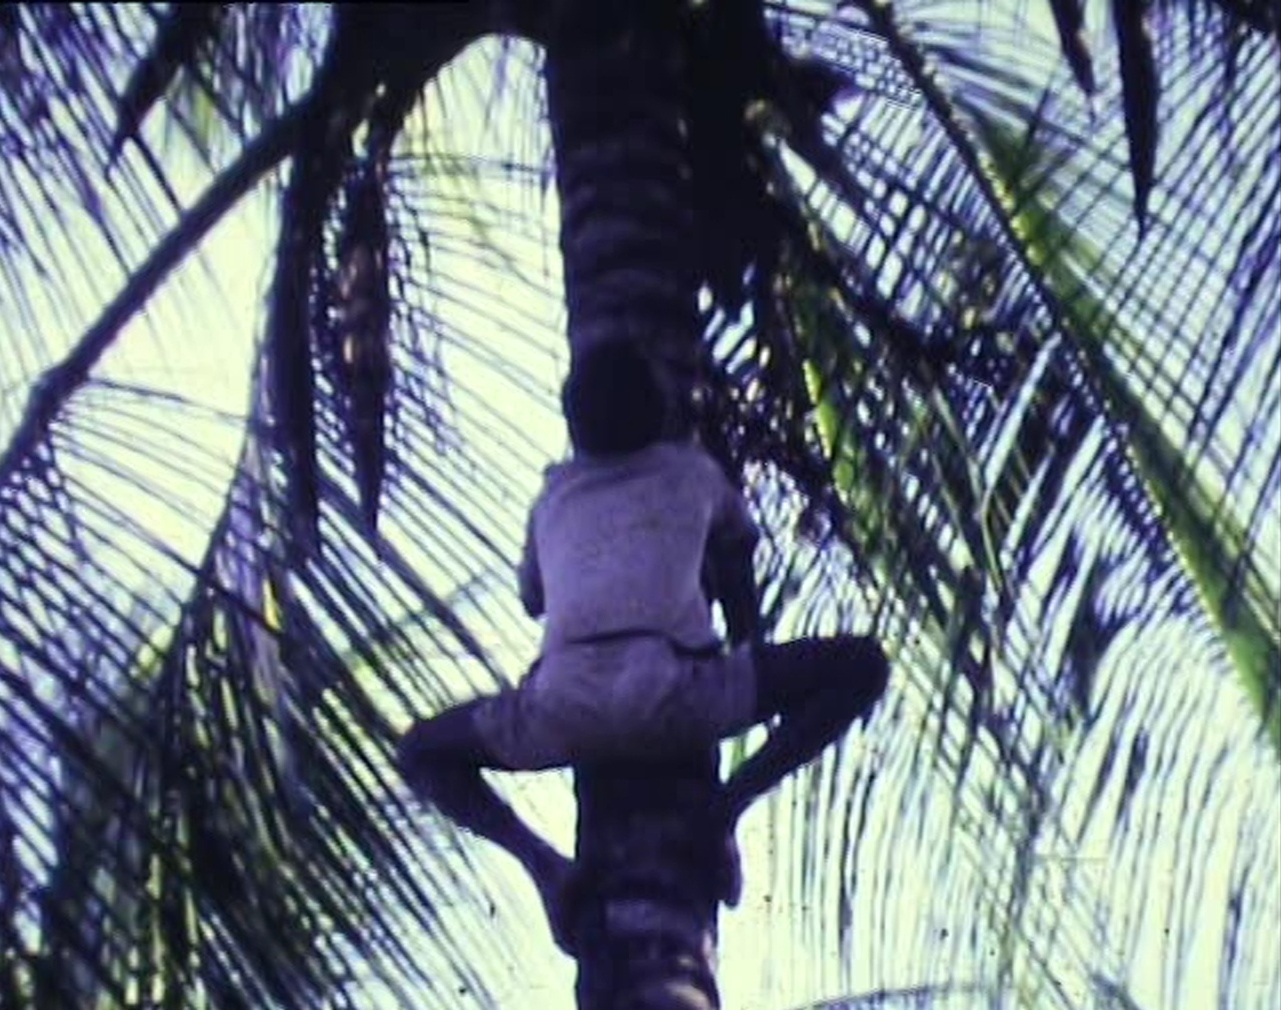 p 37 - Climbing for coconuts